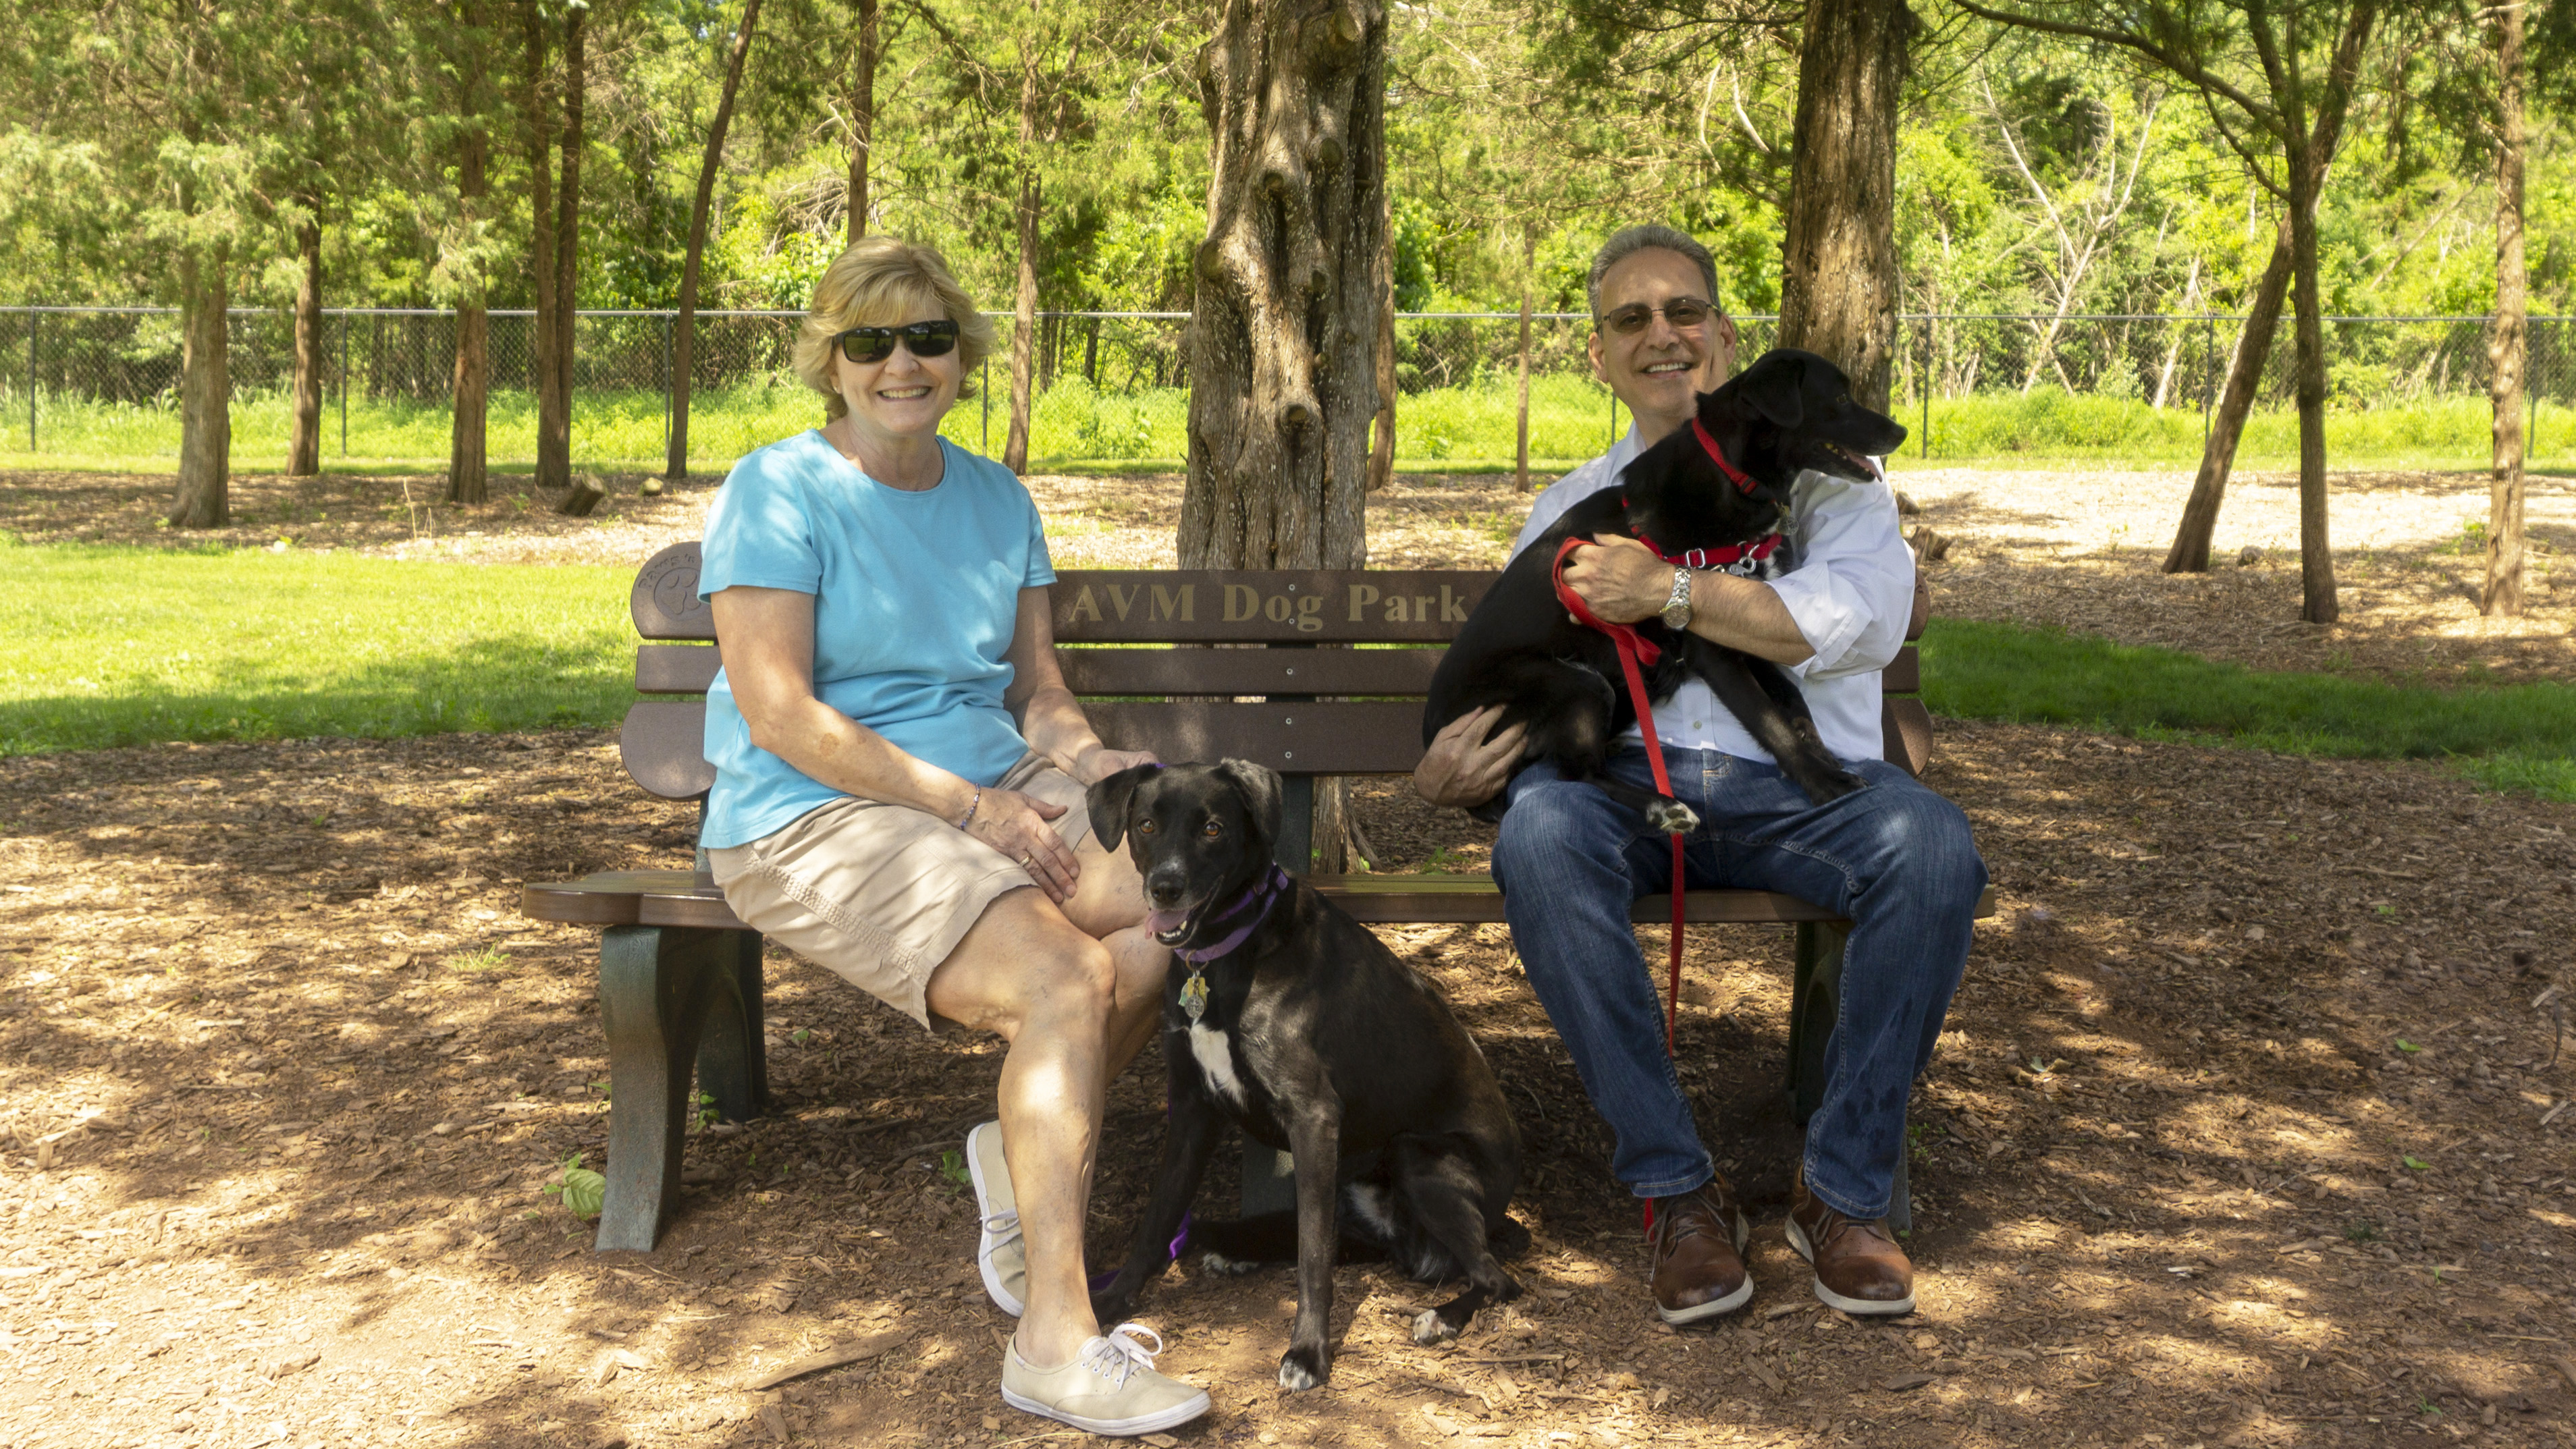 Assemblyman Roy Freiman and his wife Vicki sitting on a park bench in Ann Van Middlesworth Dog Park in Hillsborough, New Jersey.